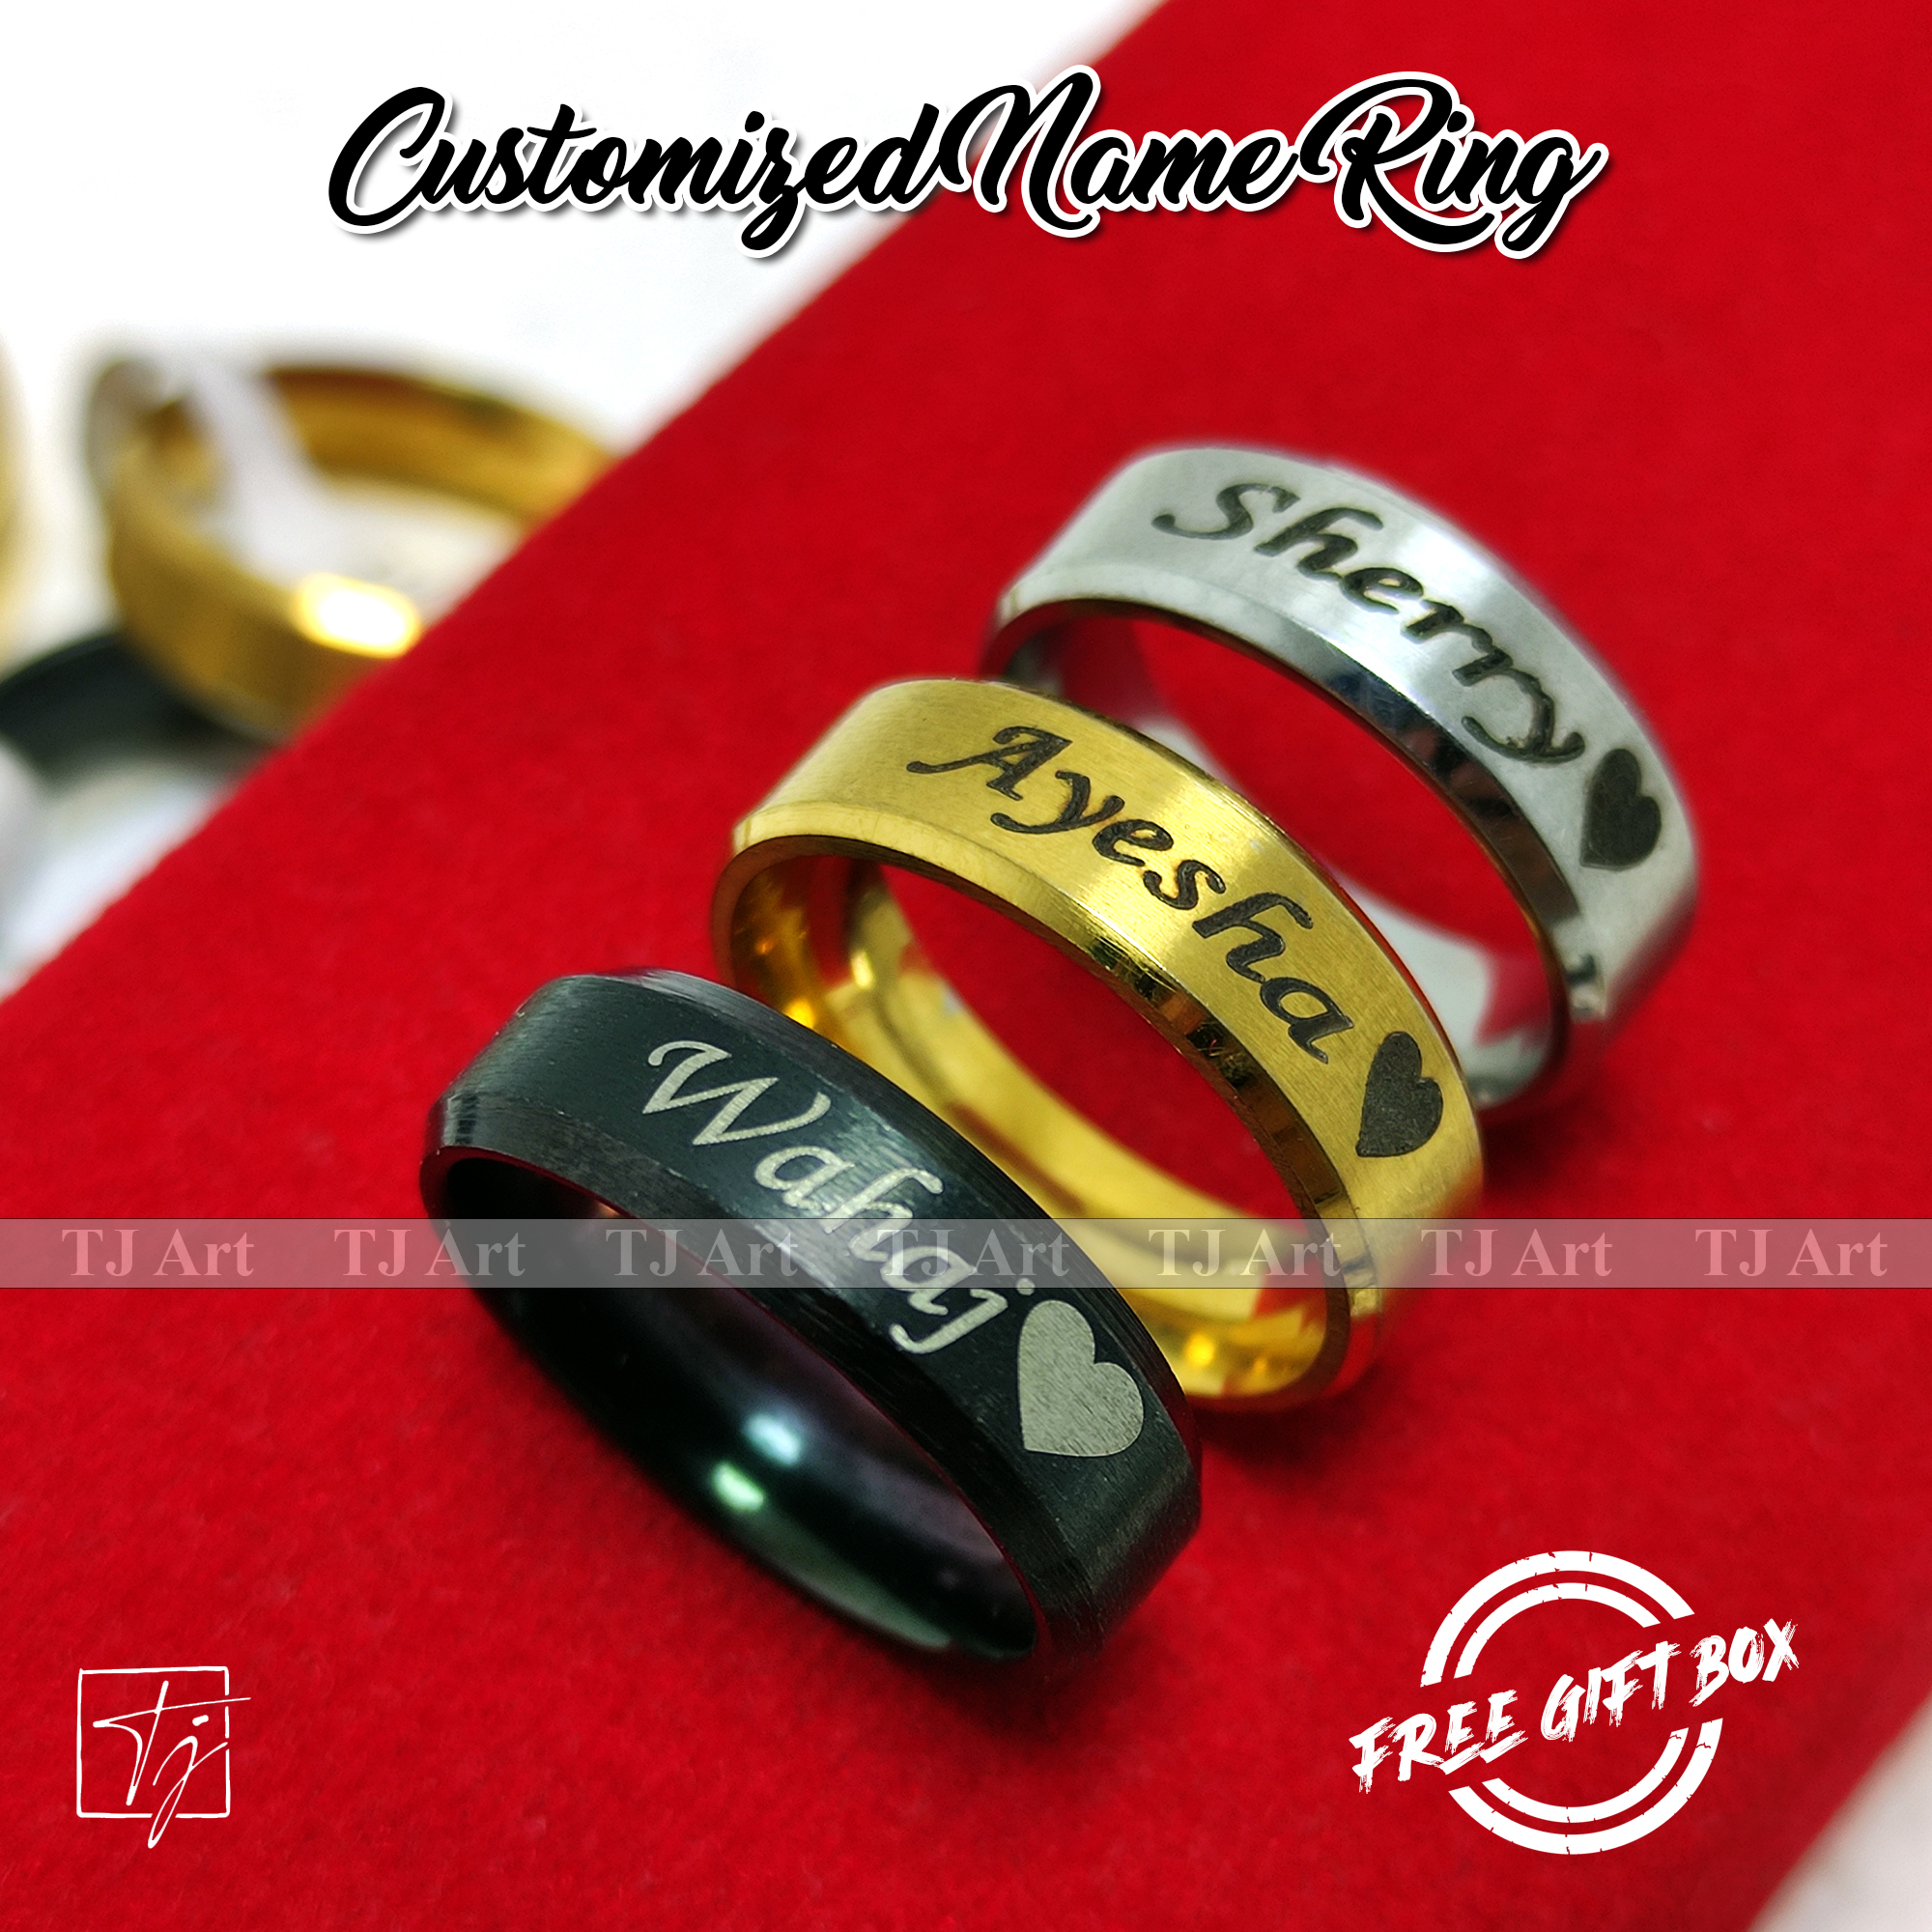 Customized/Personalized Stainless Steel Engraved Name Rings Men Women Single Couple Finger Ring Anniversary Wedding Jewelry